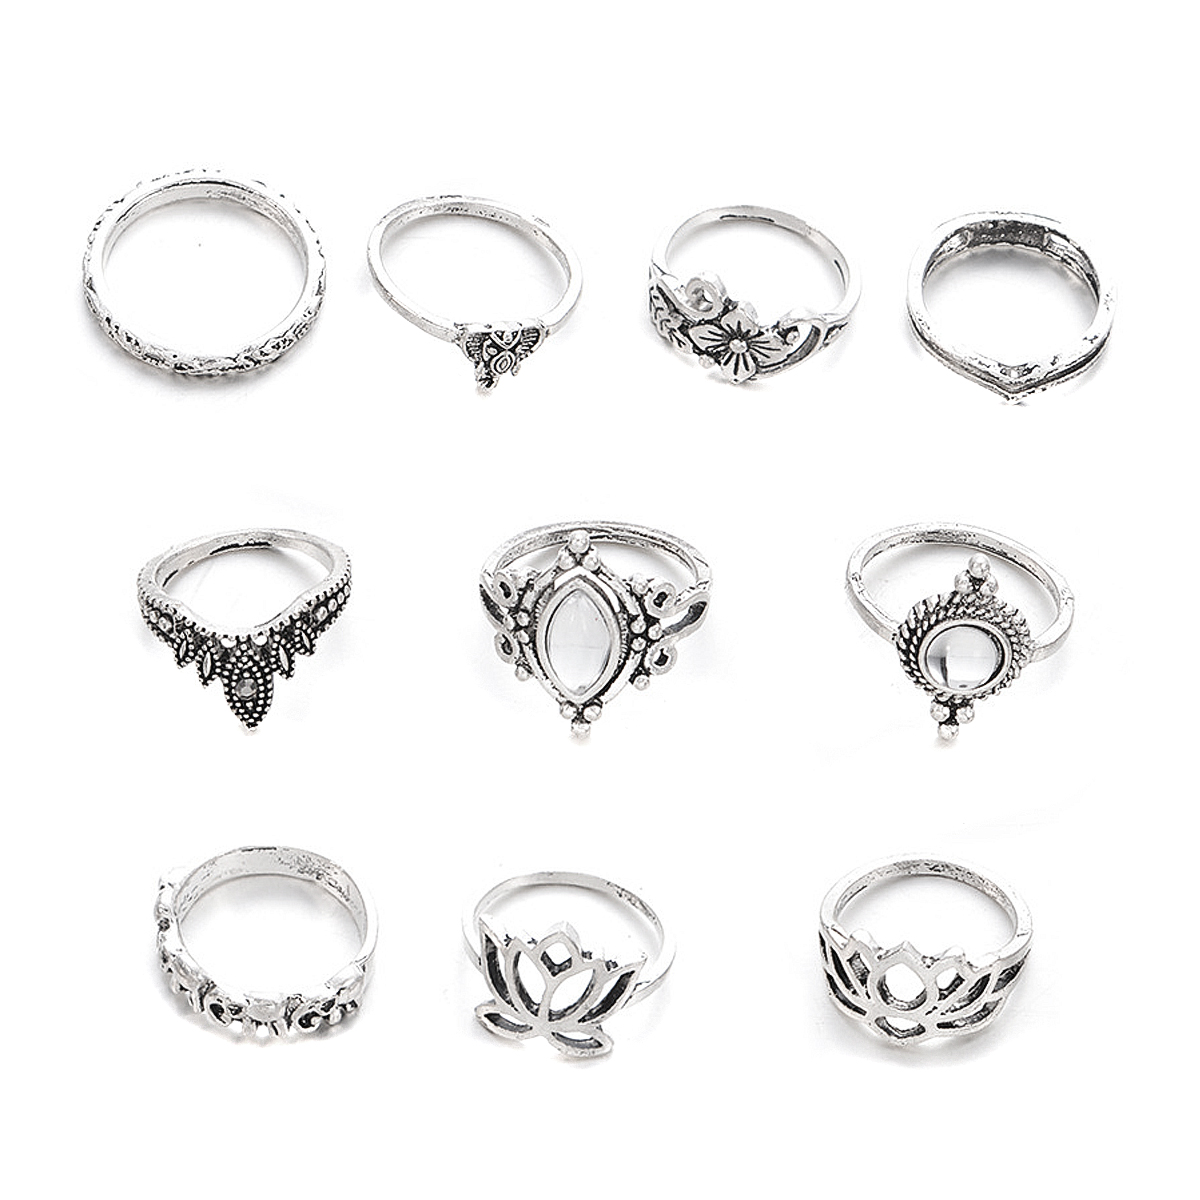 10pcs/Set Vintage Bohemian Ring Set (Less than 1$ each)